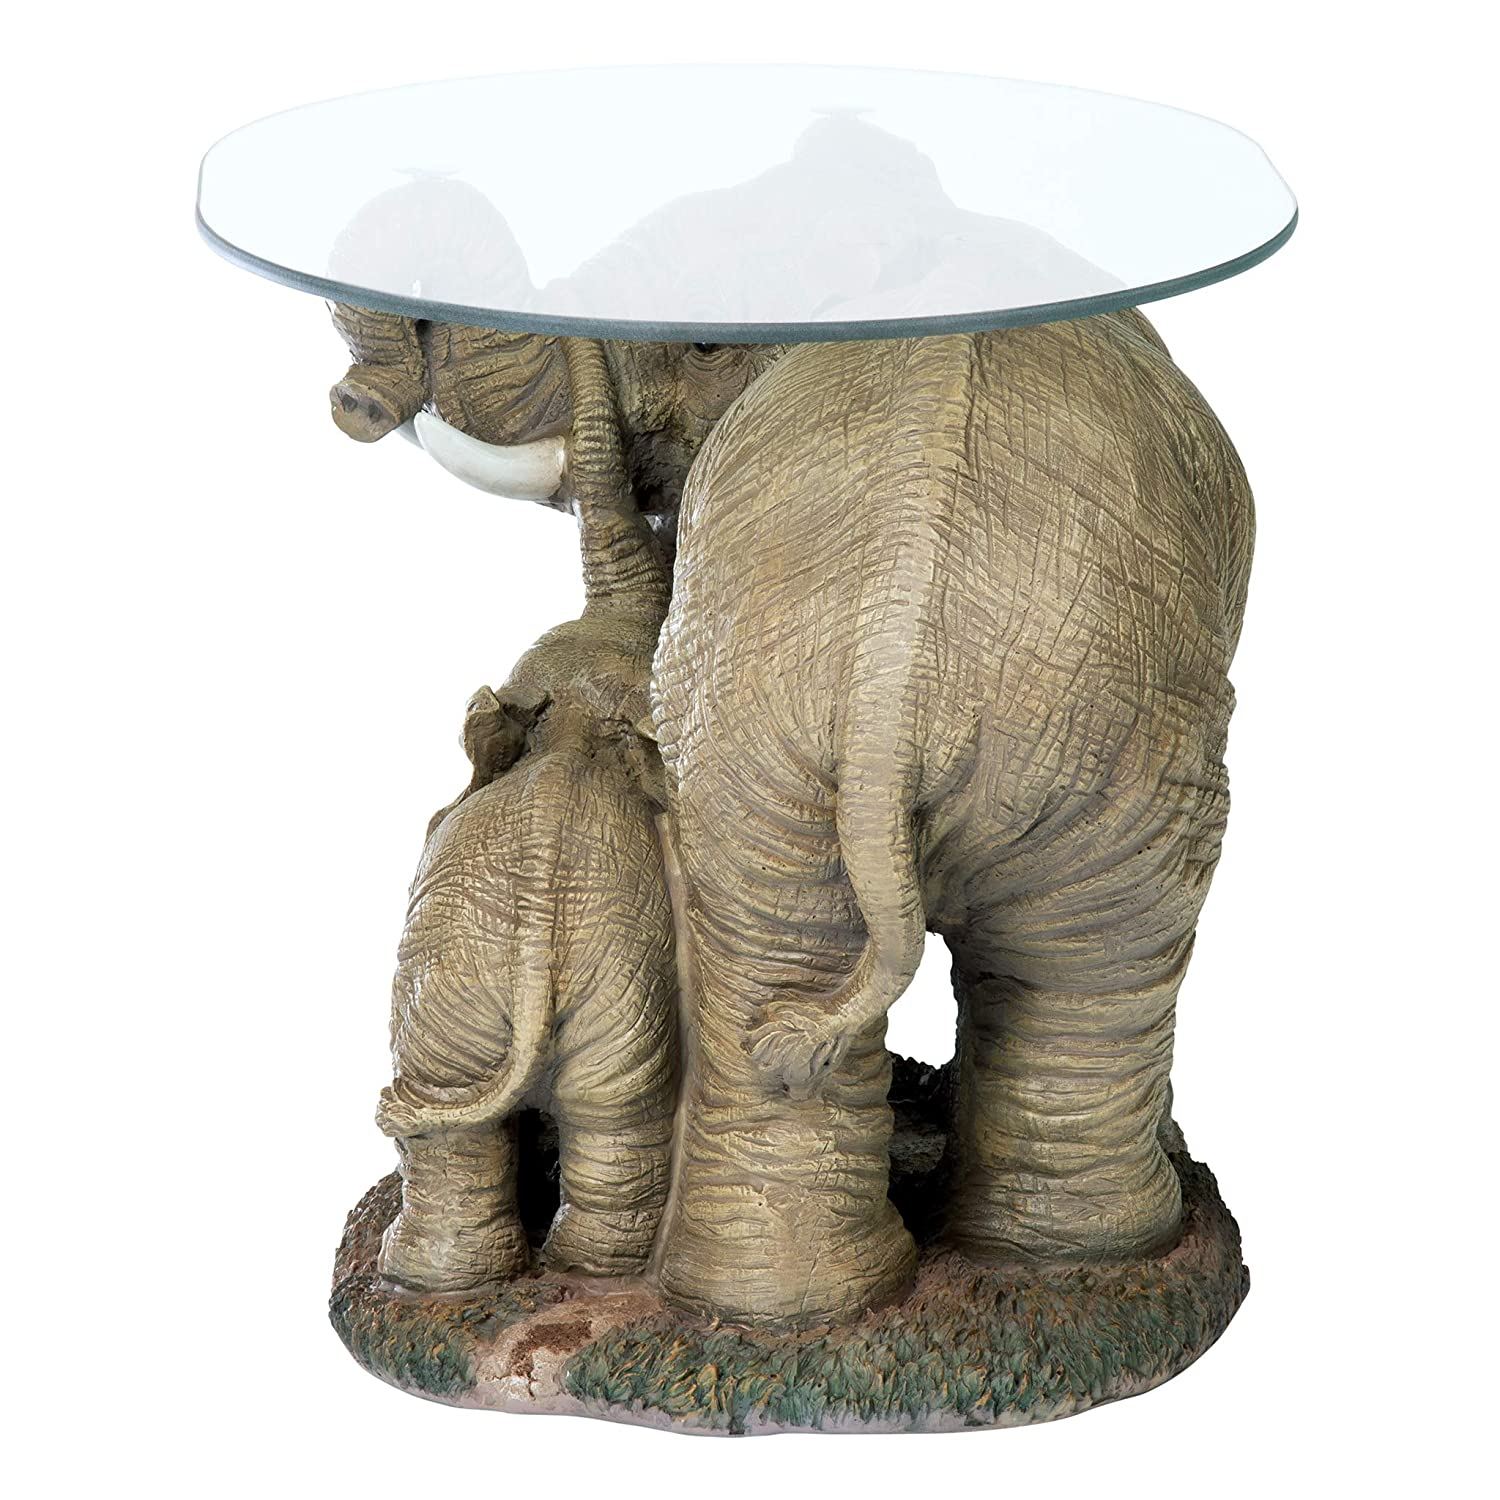 76 25 Cm Polyresin Full Color Design Toscano Jaipur Elephant Festival Indian Decor Coffee Table With Glass Top End Tables